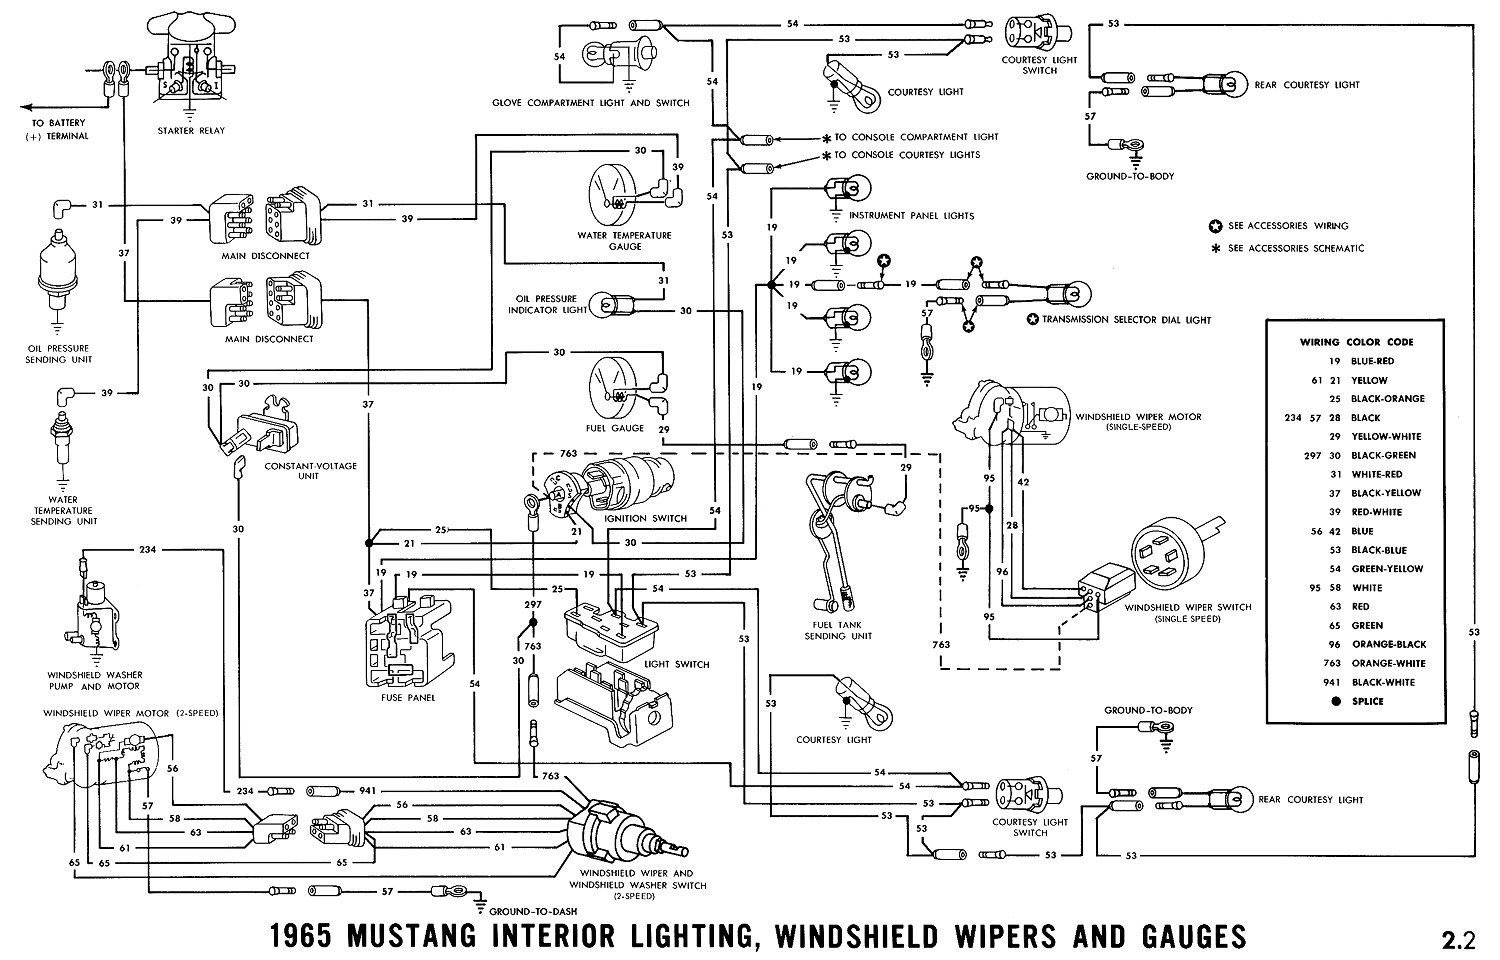 1965g mustang wiring diagrams mustang engine diagram \u2022 free wiring 1970 ford wiring diagram at readyjetset.co